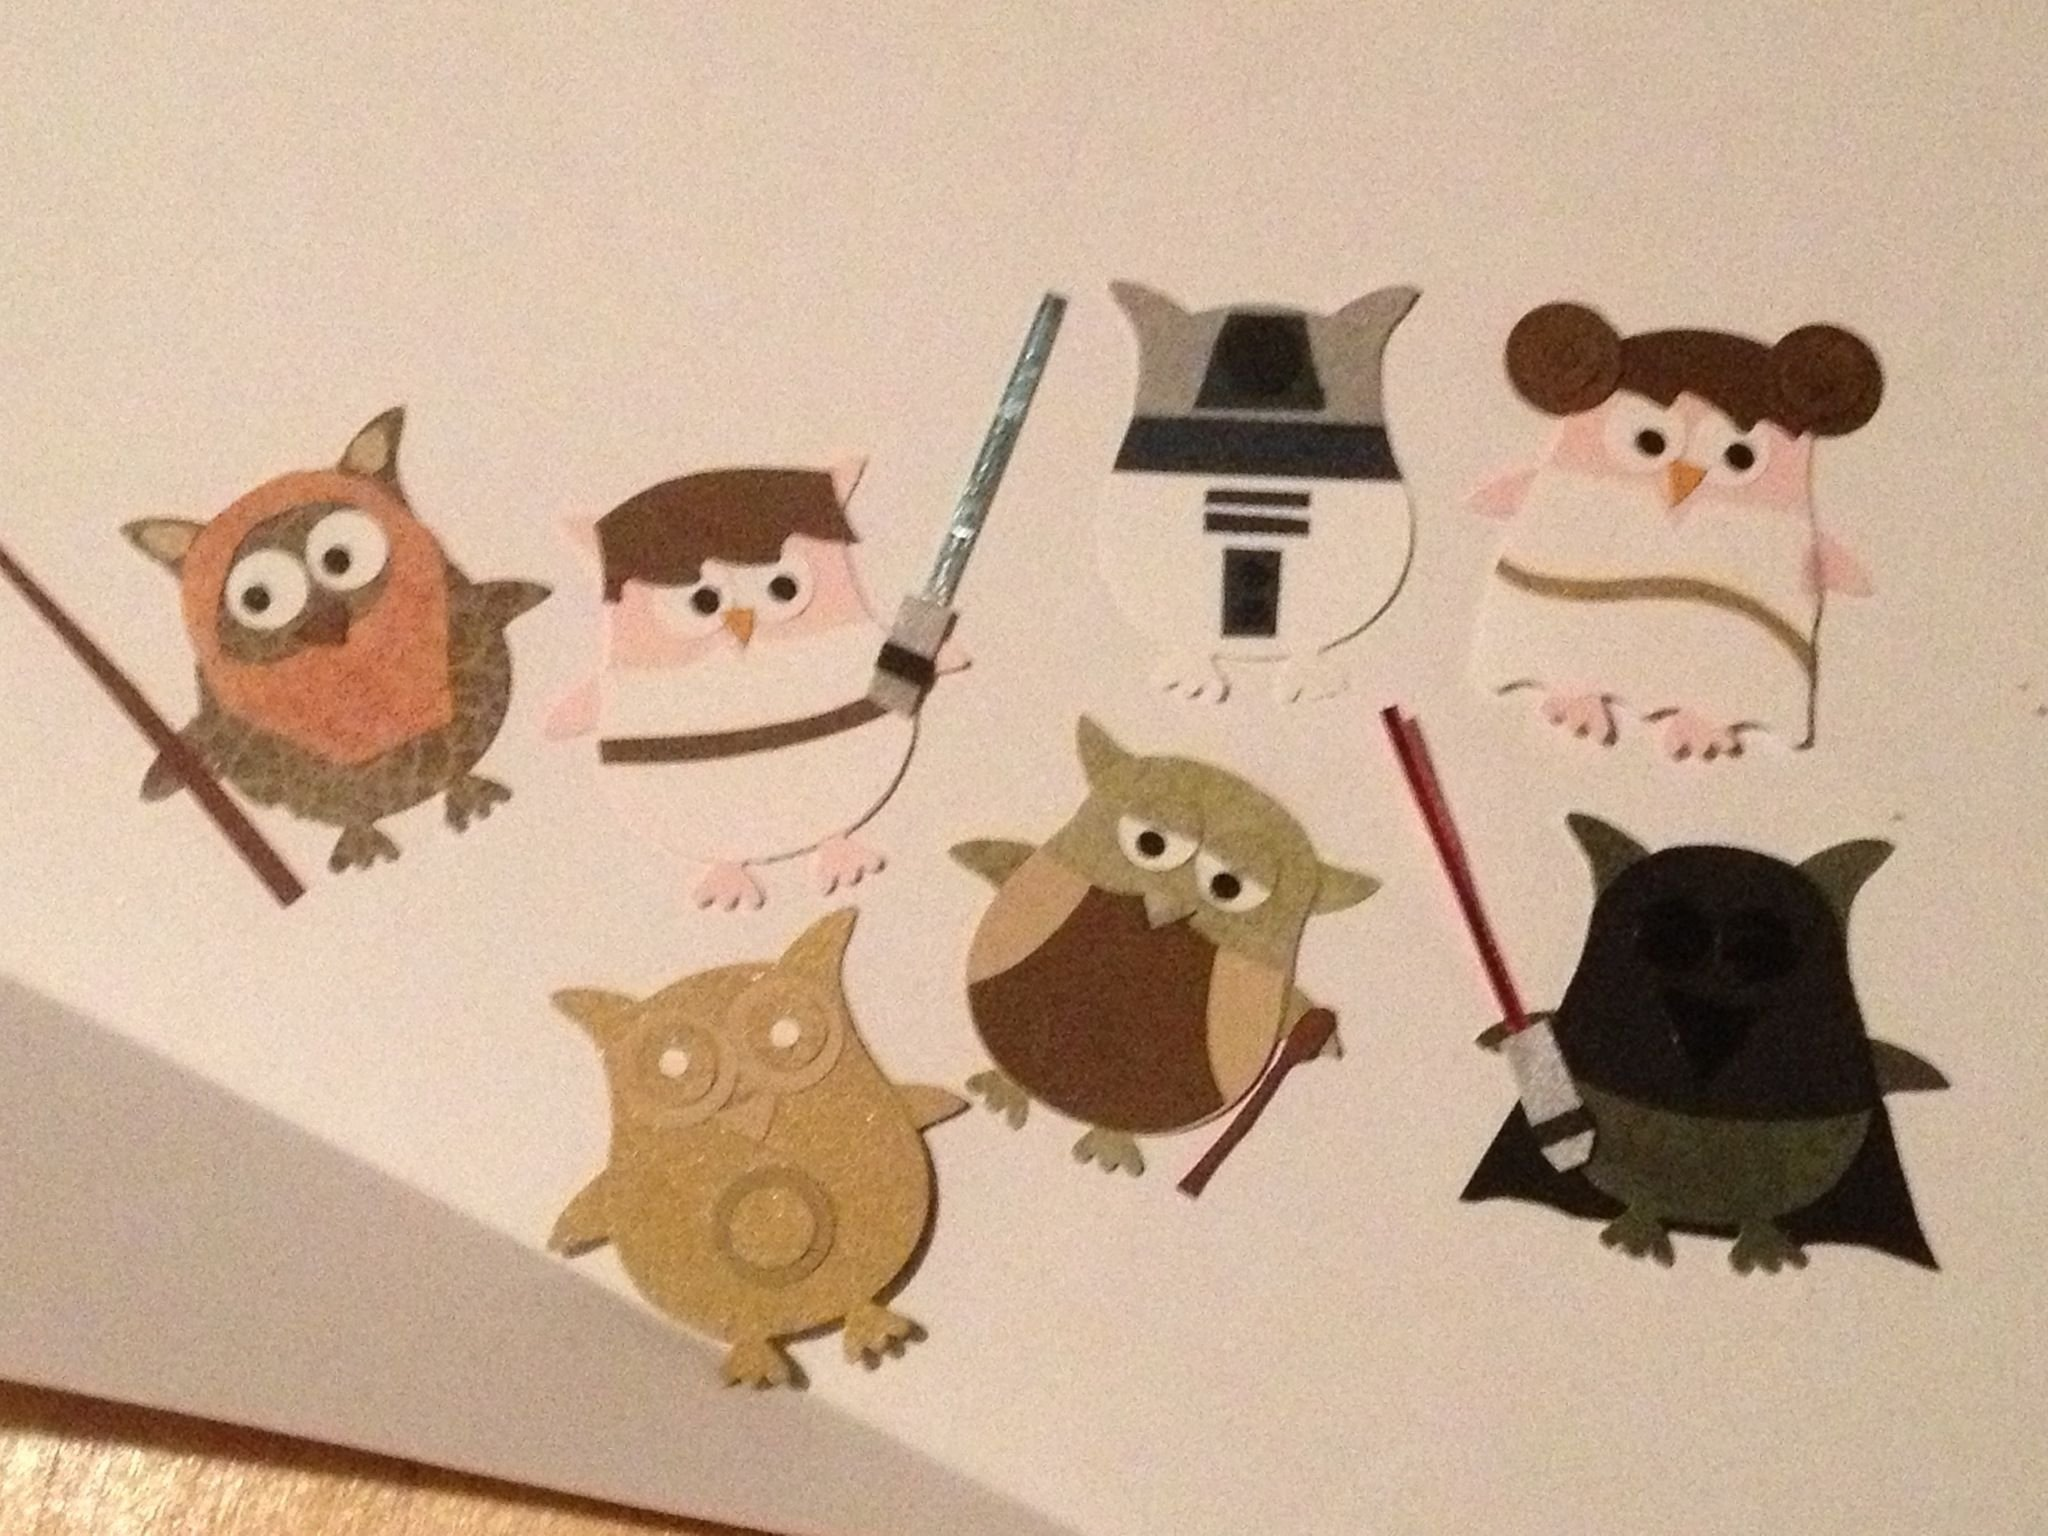 10 Elegant Stampin Up Owl Punch Ideas stampin up owl punch star wars crafts paper owl punch 2020